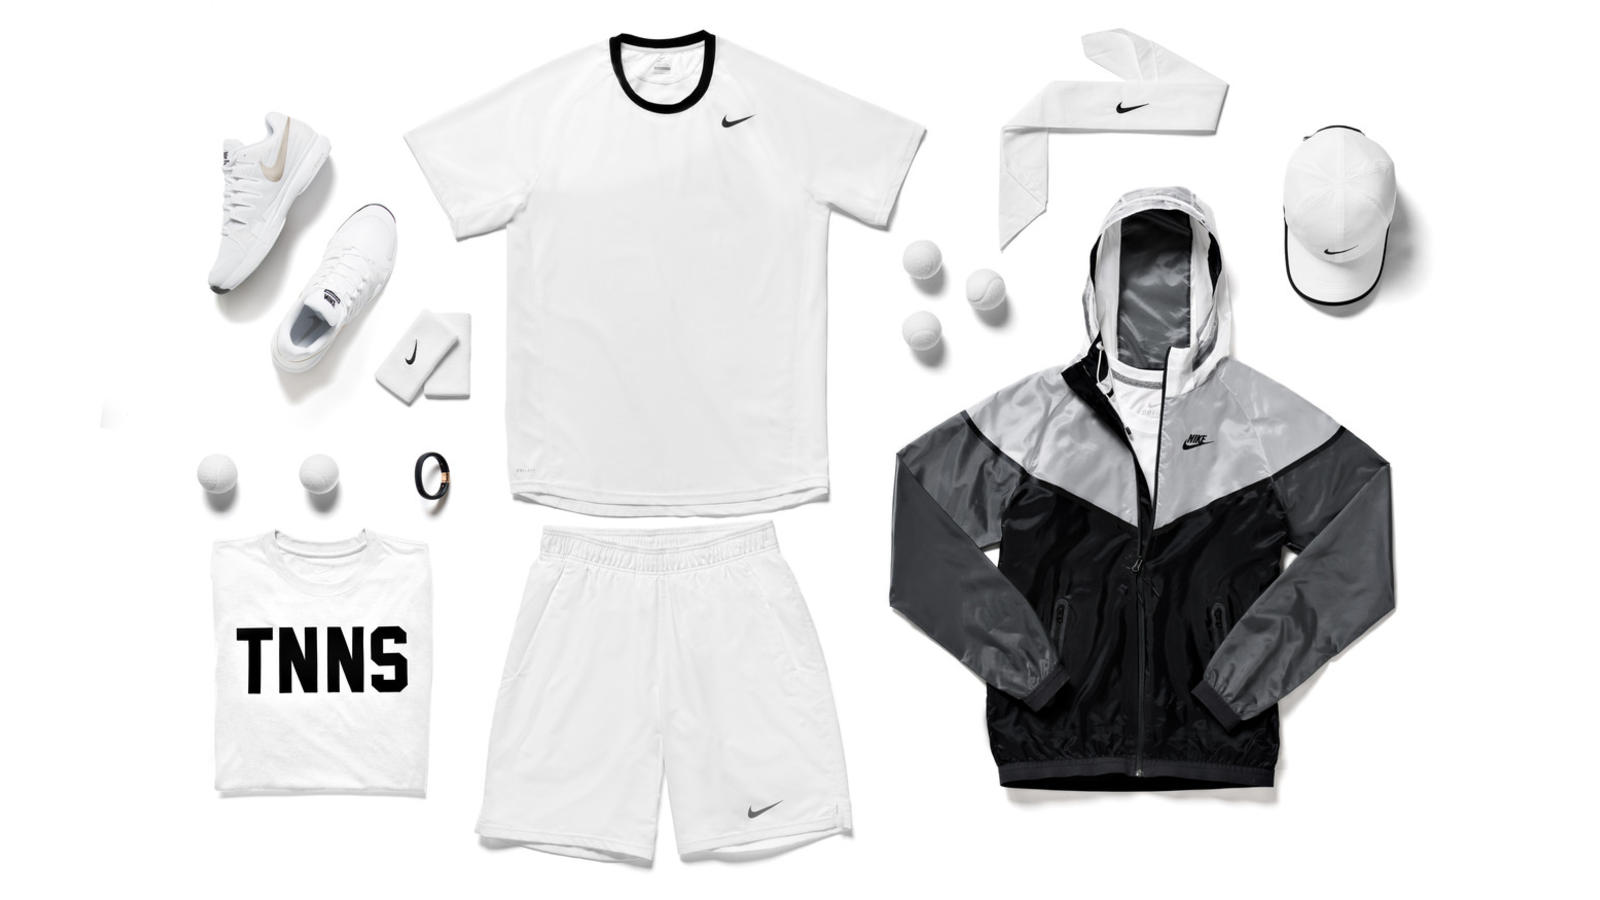 Nike Tennis Young Contenders Look - London 2014